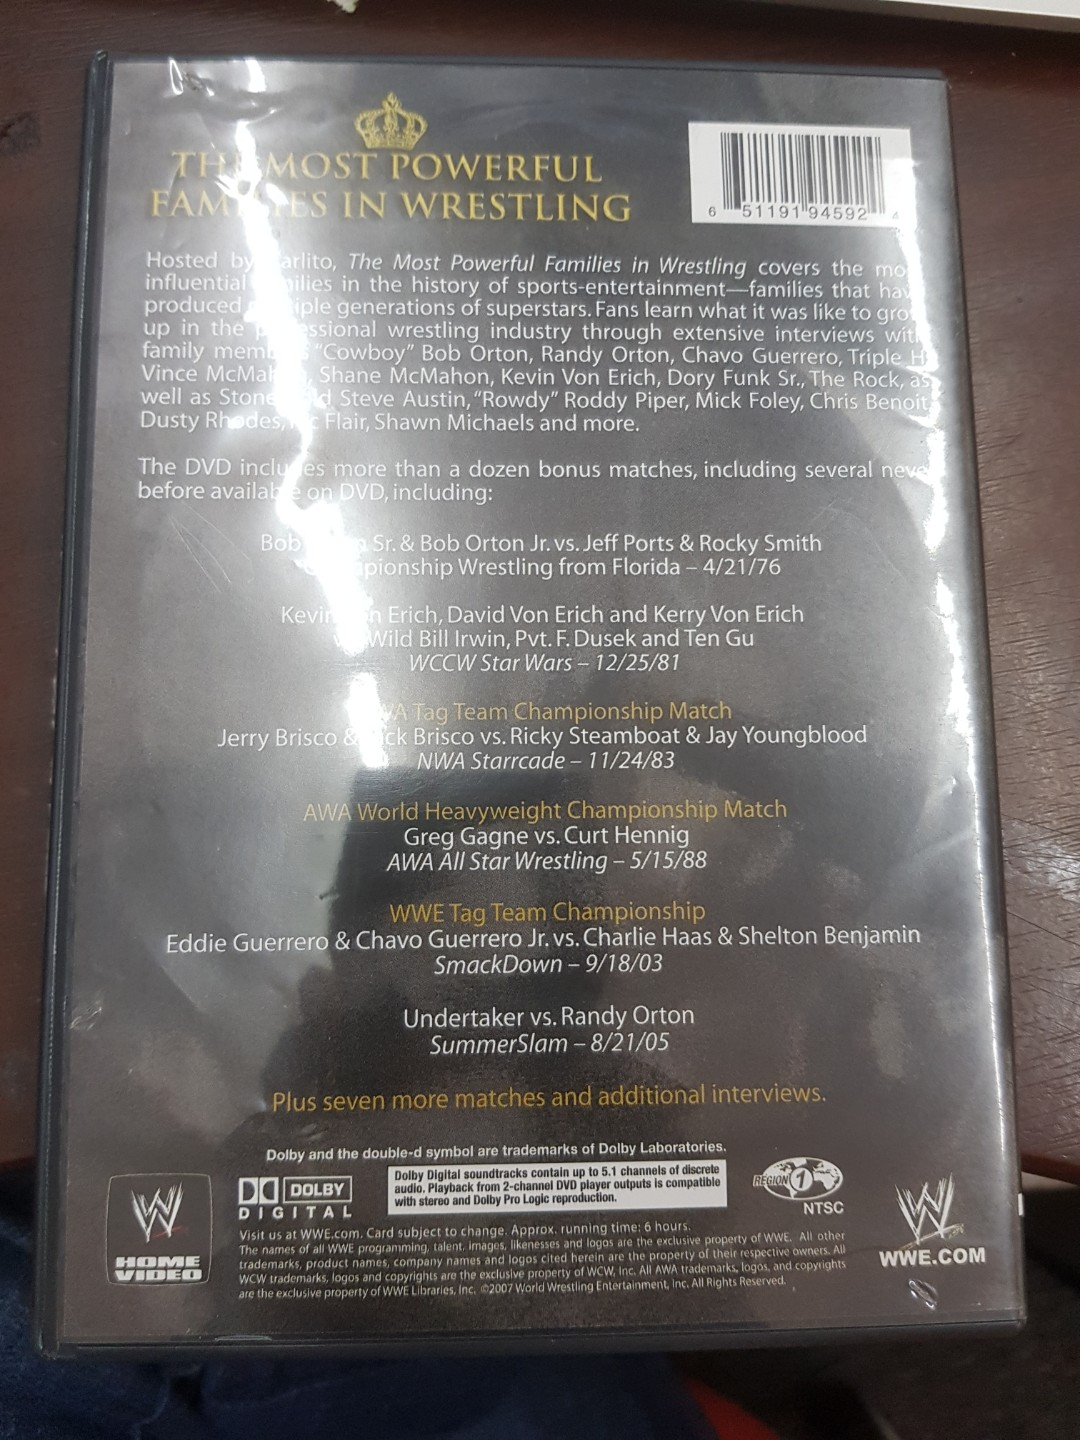 Wwe wwf the most powerful families in wrestling dvd region 1